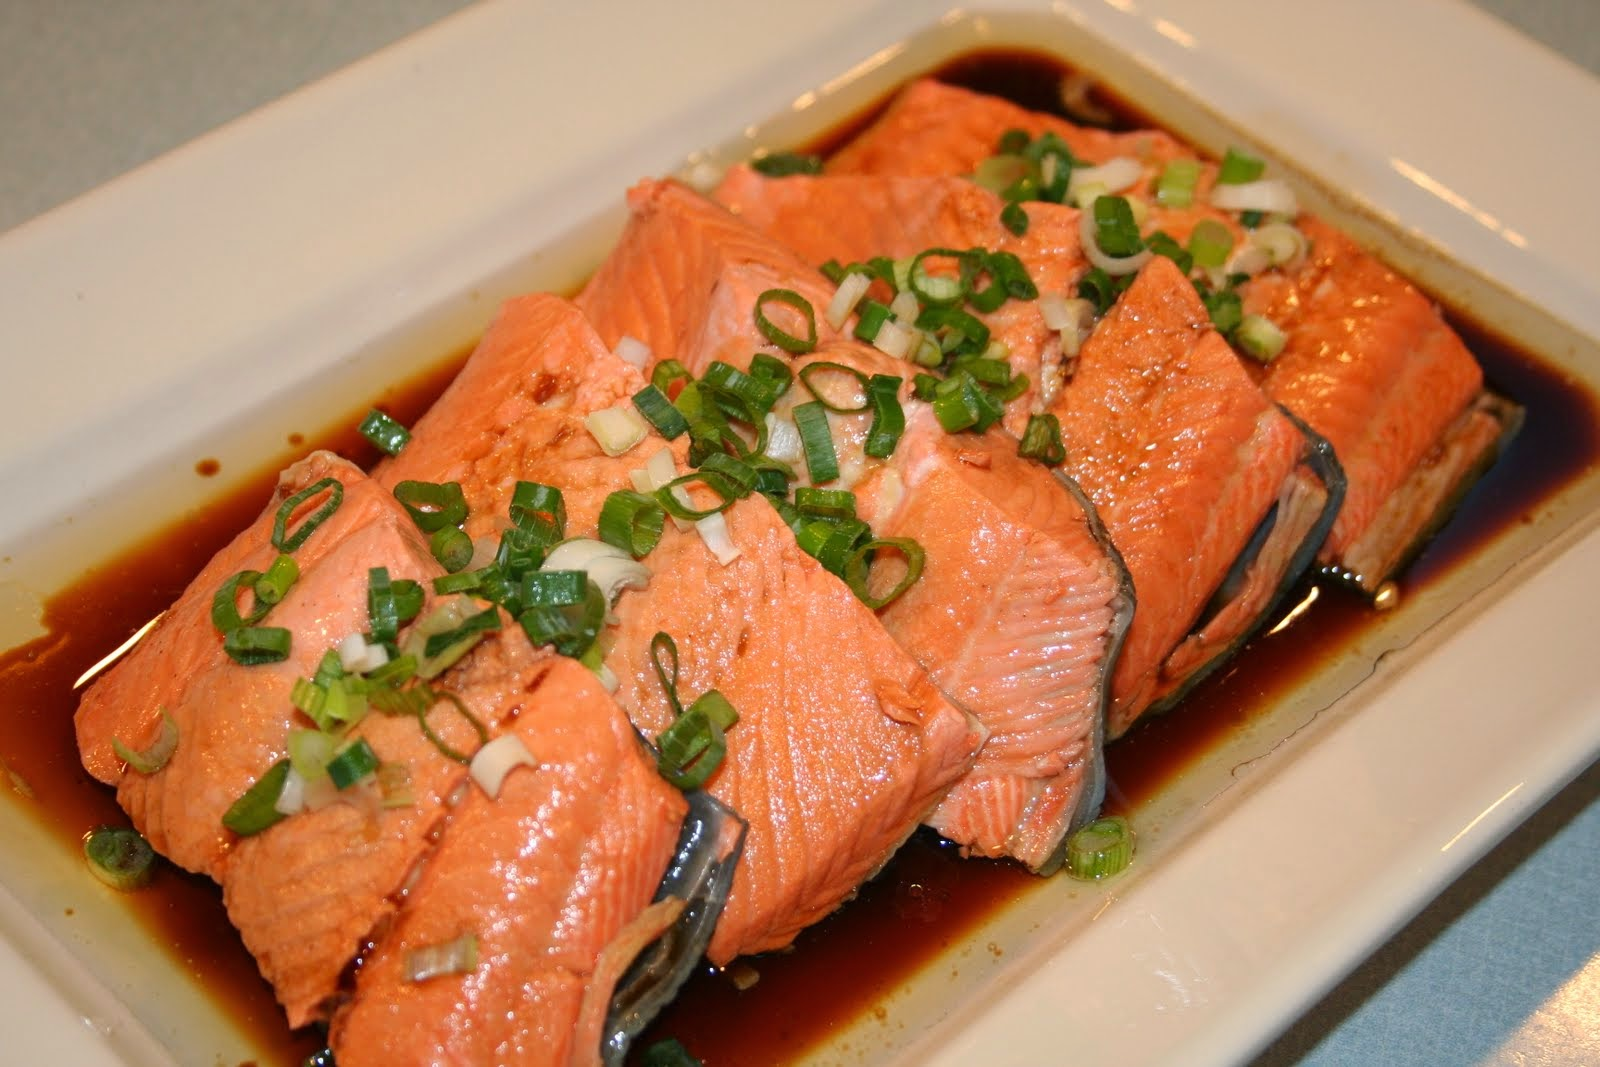 Fish Recipes In Urdu Pinoy Chinese For Kids Easy With Sauce Healthy Asian  Photos : Salmon